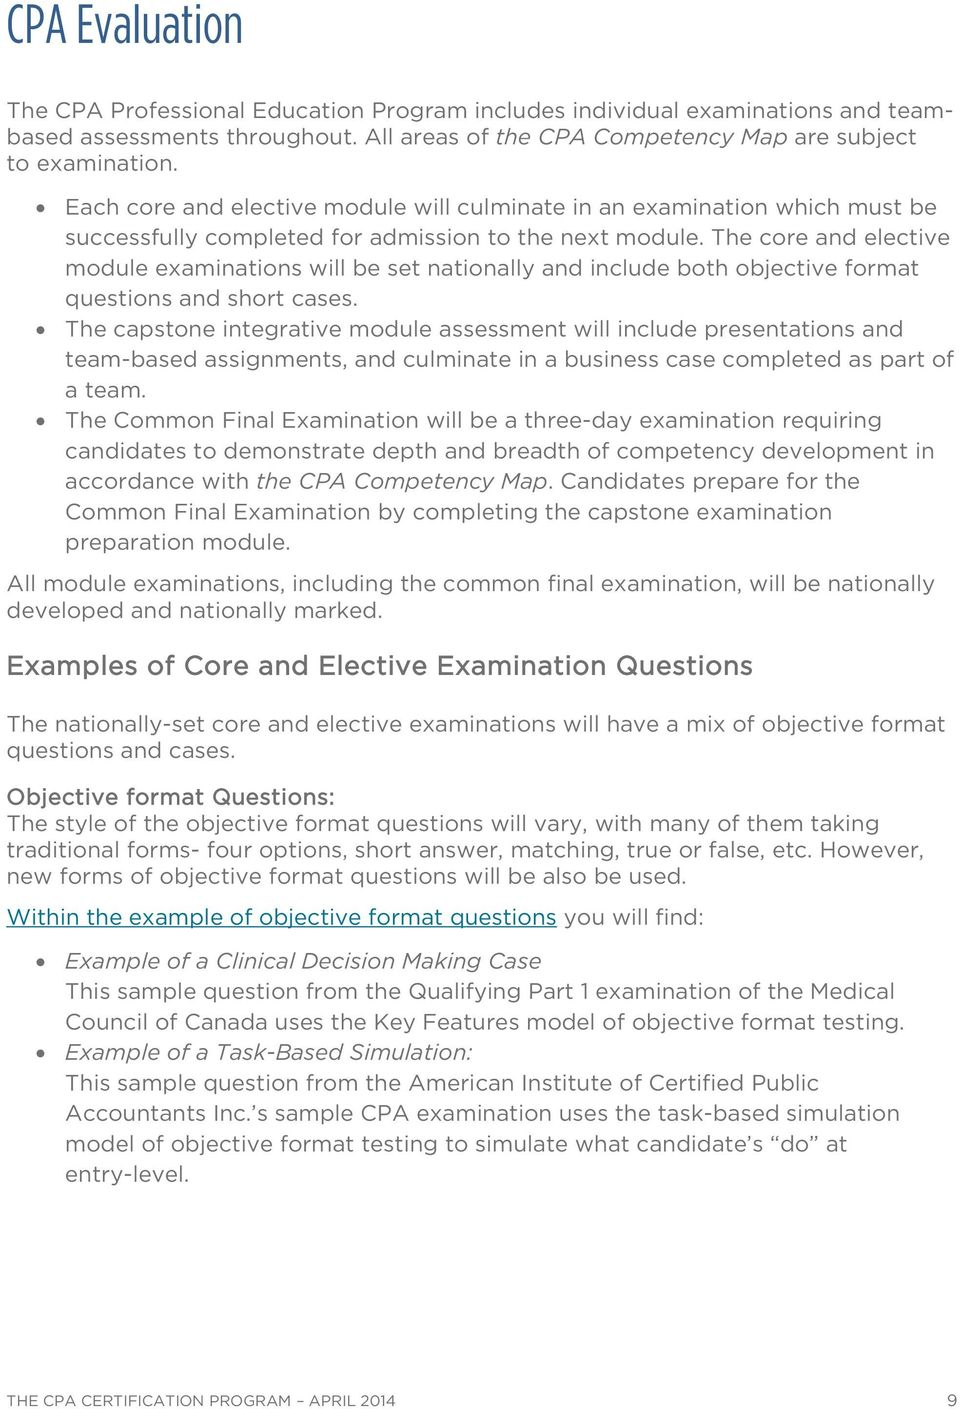 The core and elective module examinations will be set nationally and include both objective format questions and short cases.